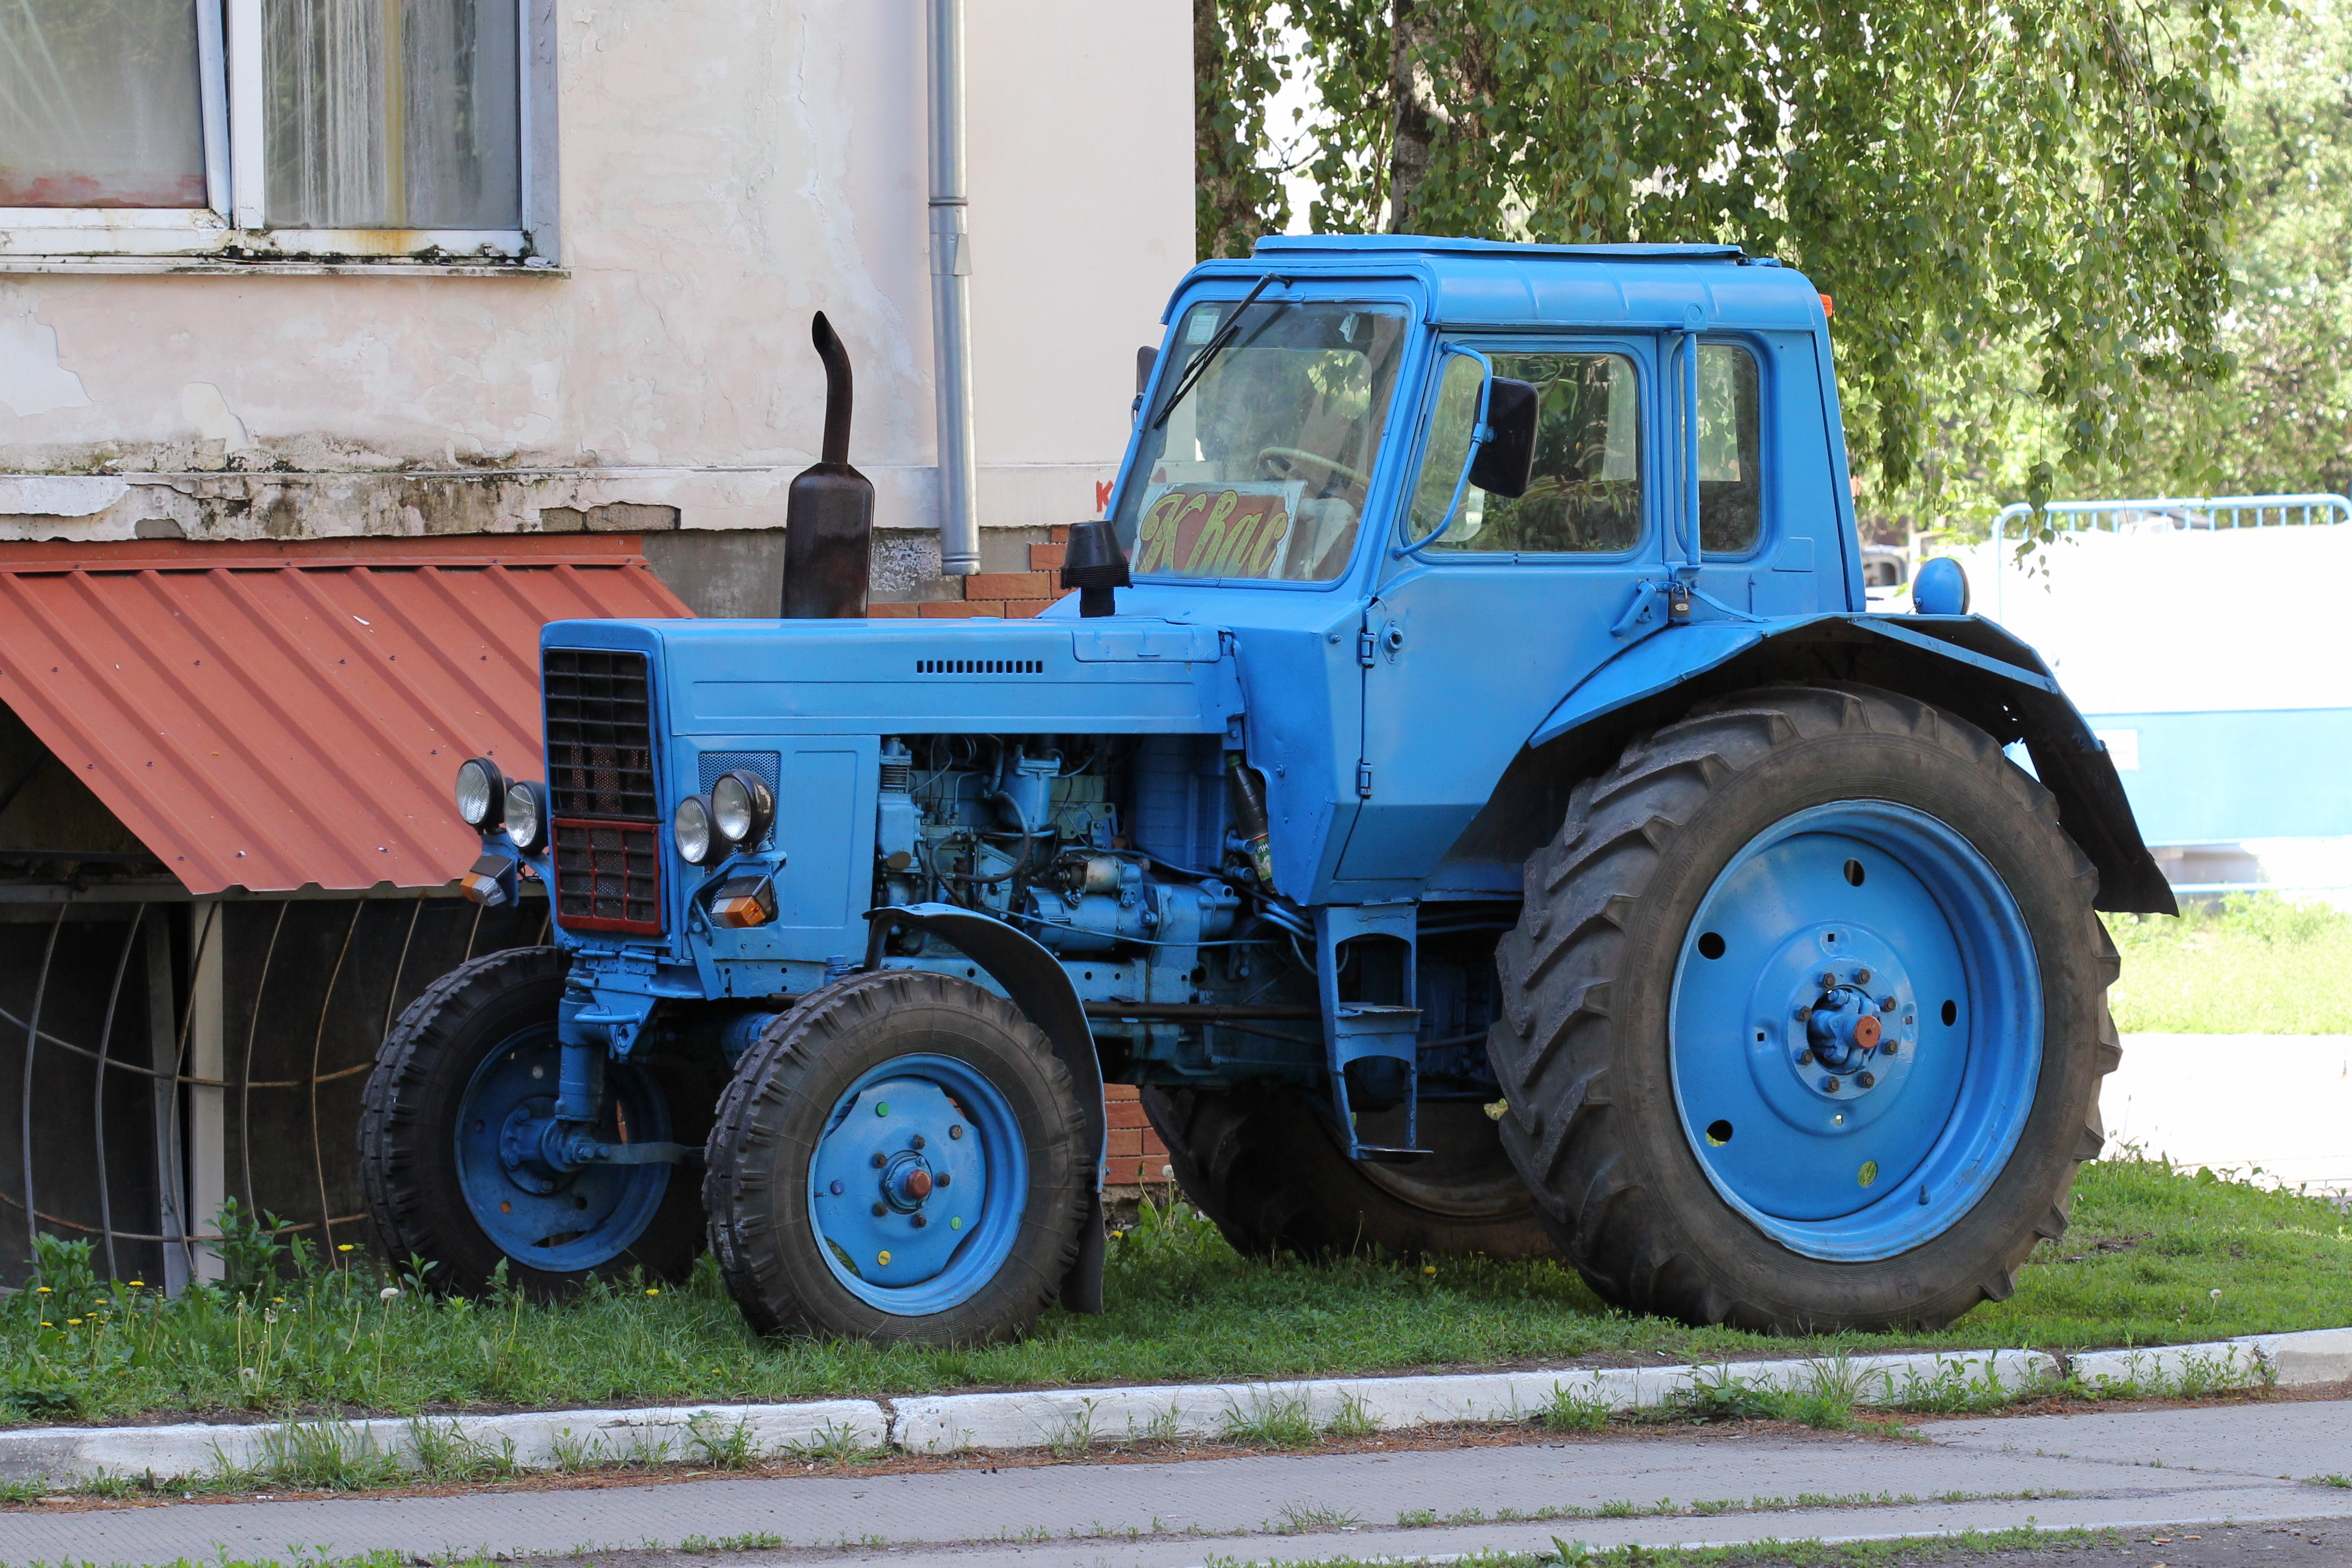 Диск 320-1601090 (корзина МТЗ-320) - agrohelp.by